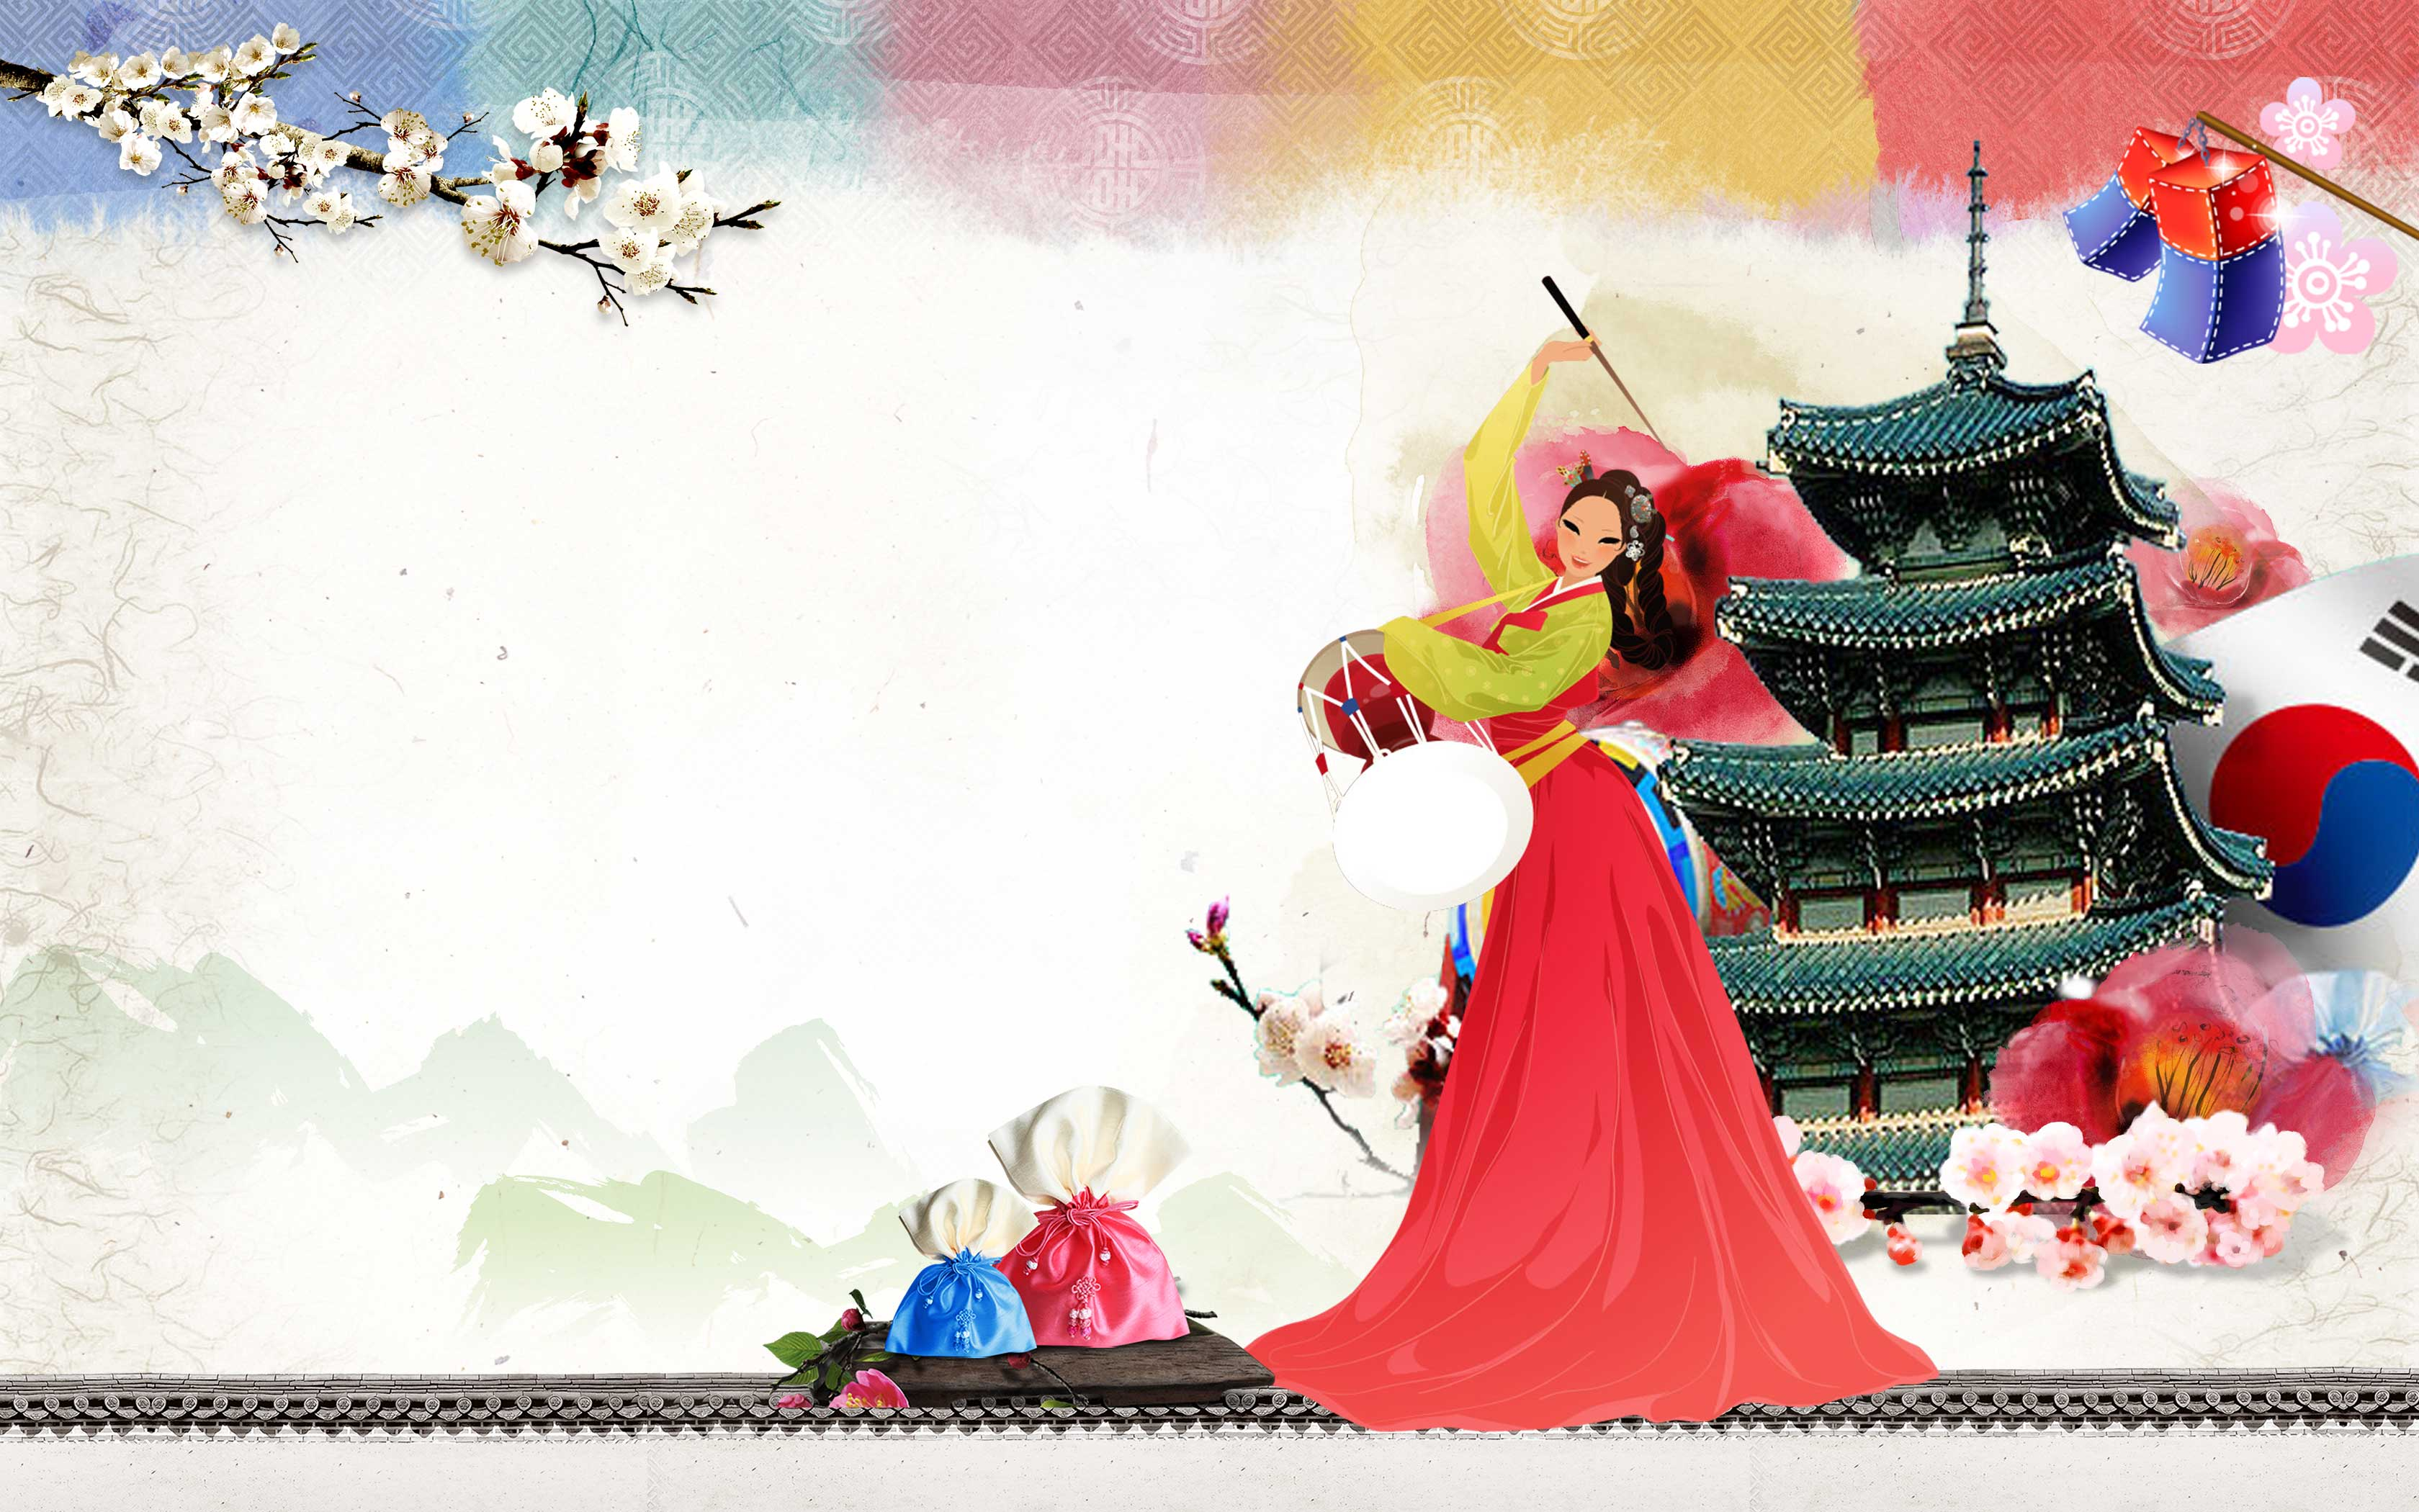 korea travel service  wind  hanbok  tourism background